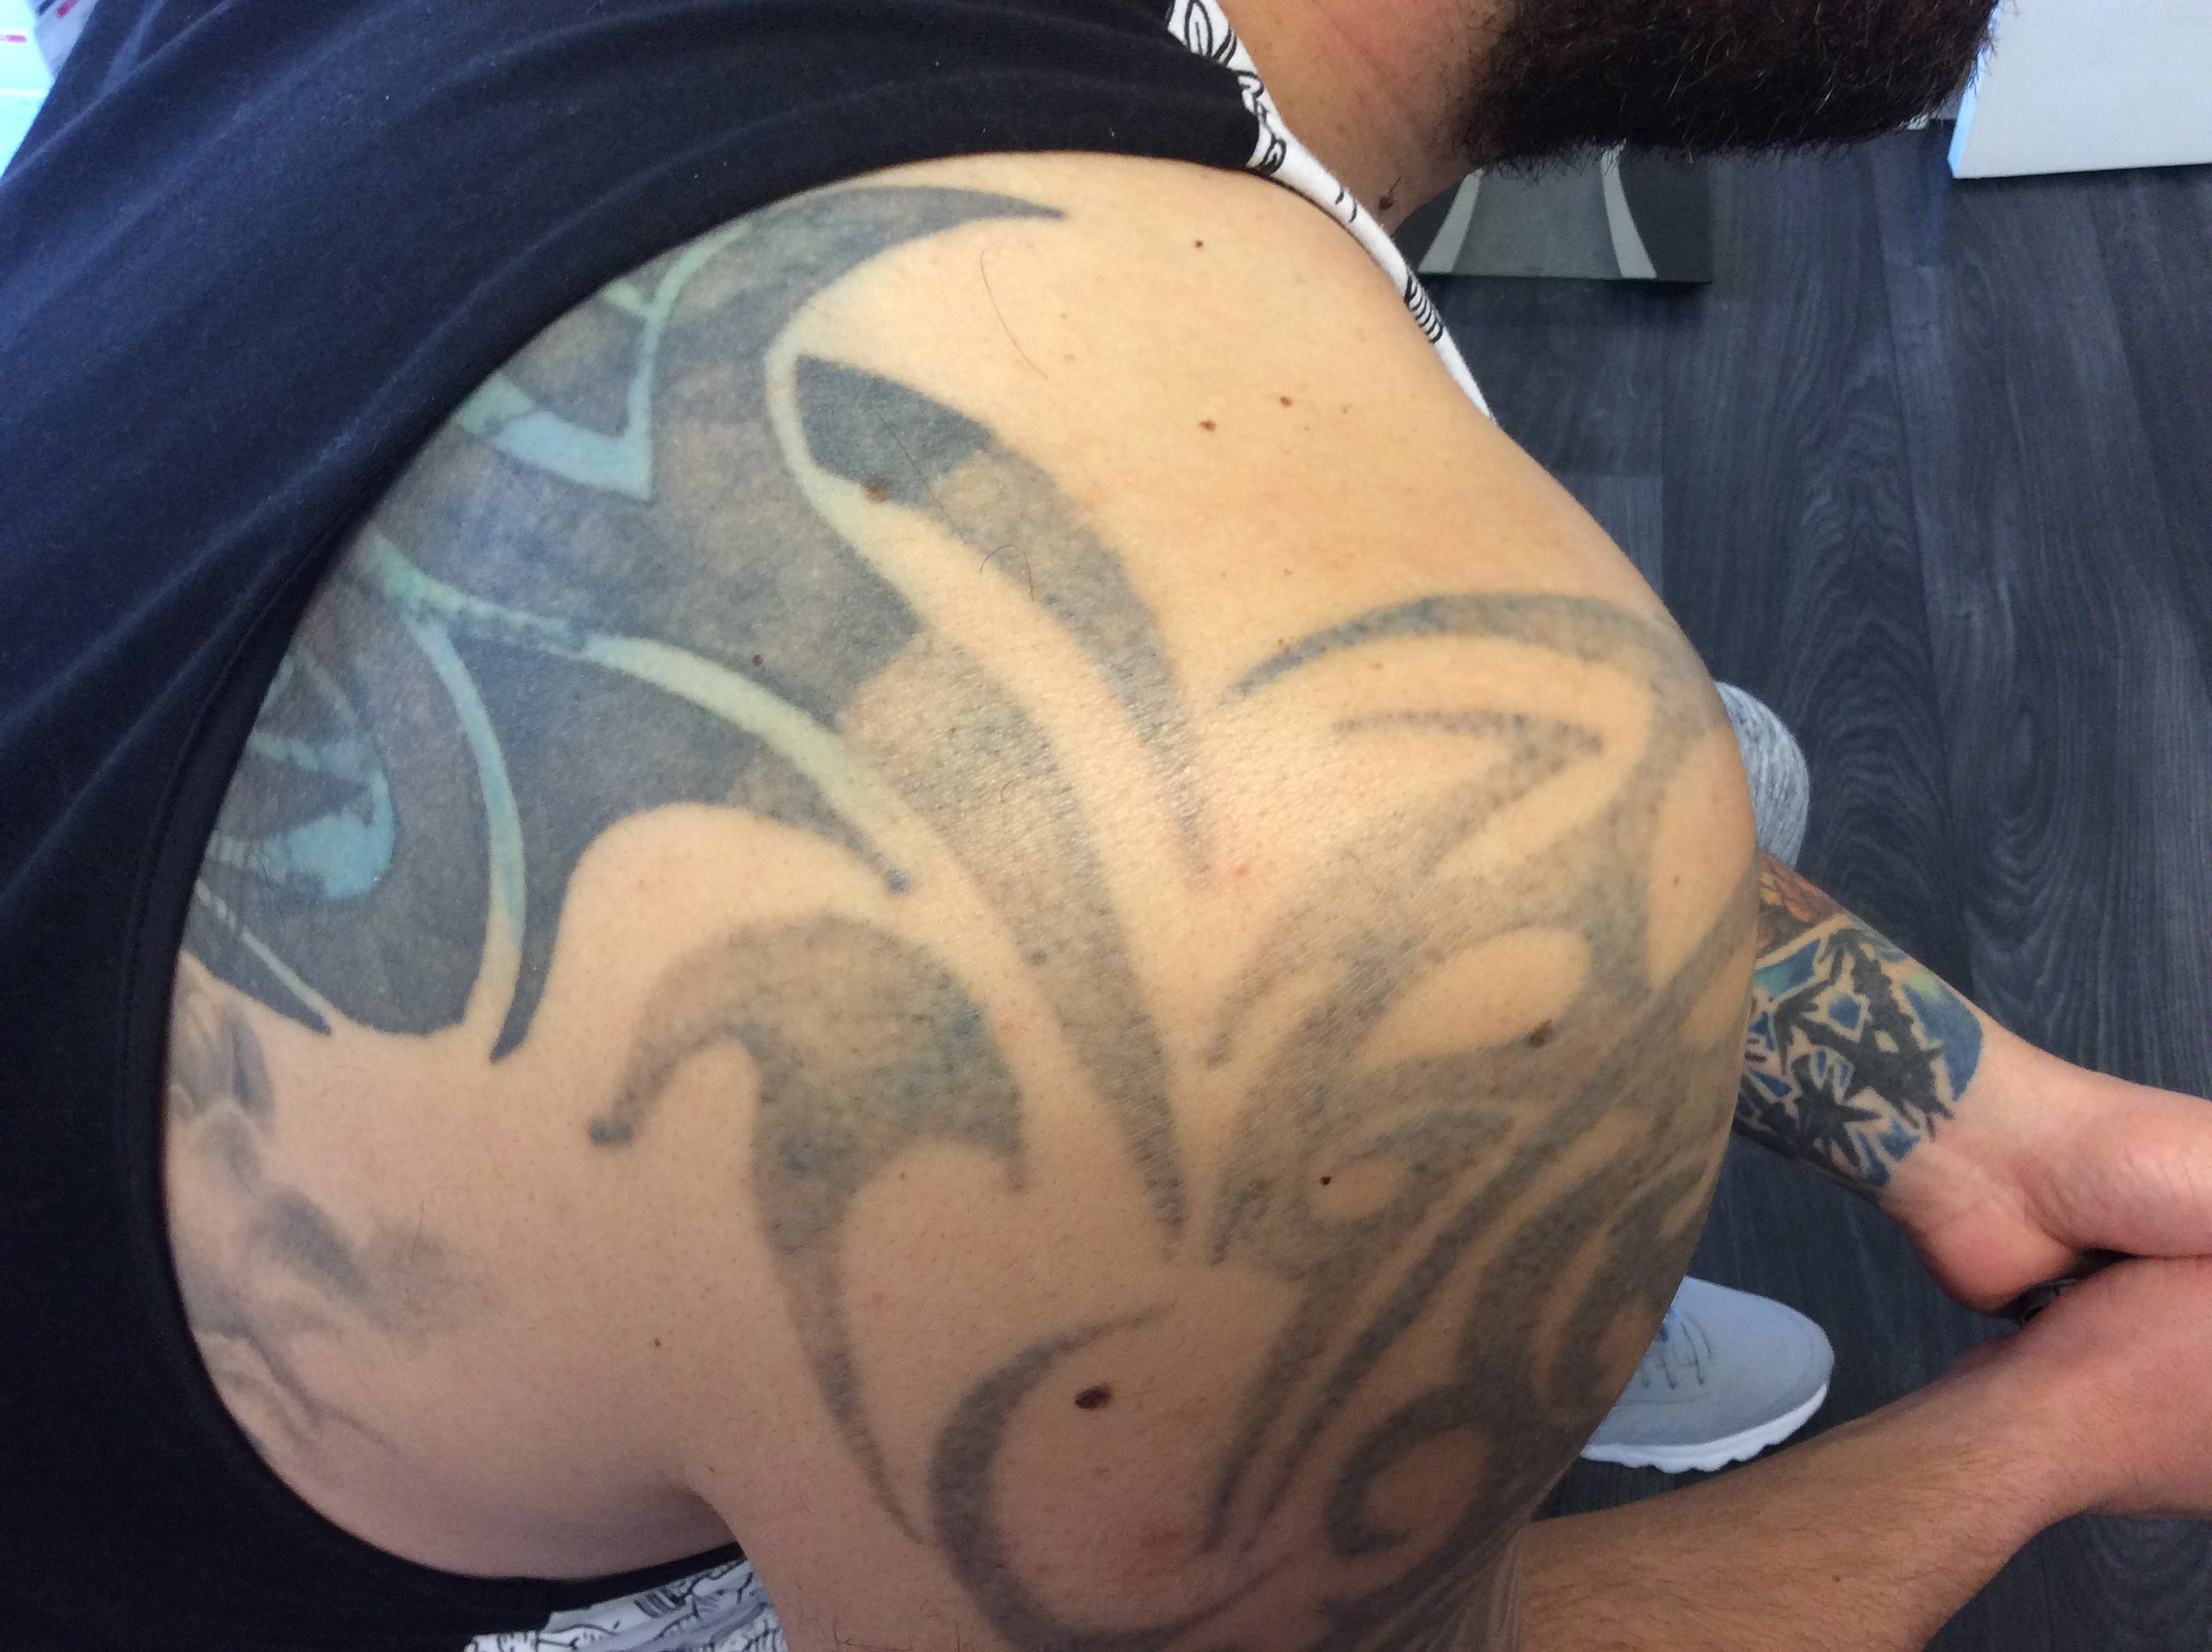 This tattoo half of it faded by Maria Patricia. Getting it ready for a new tattoo to go over